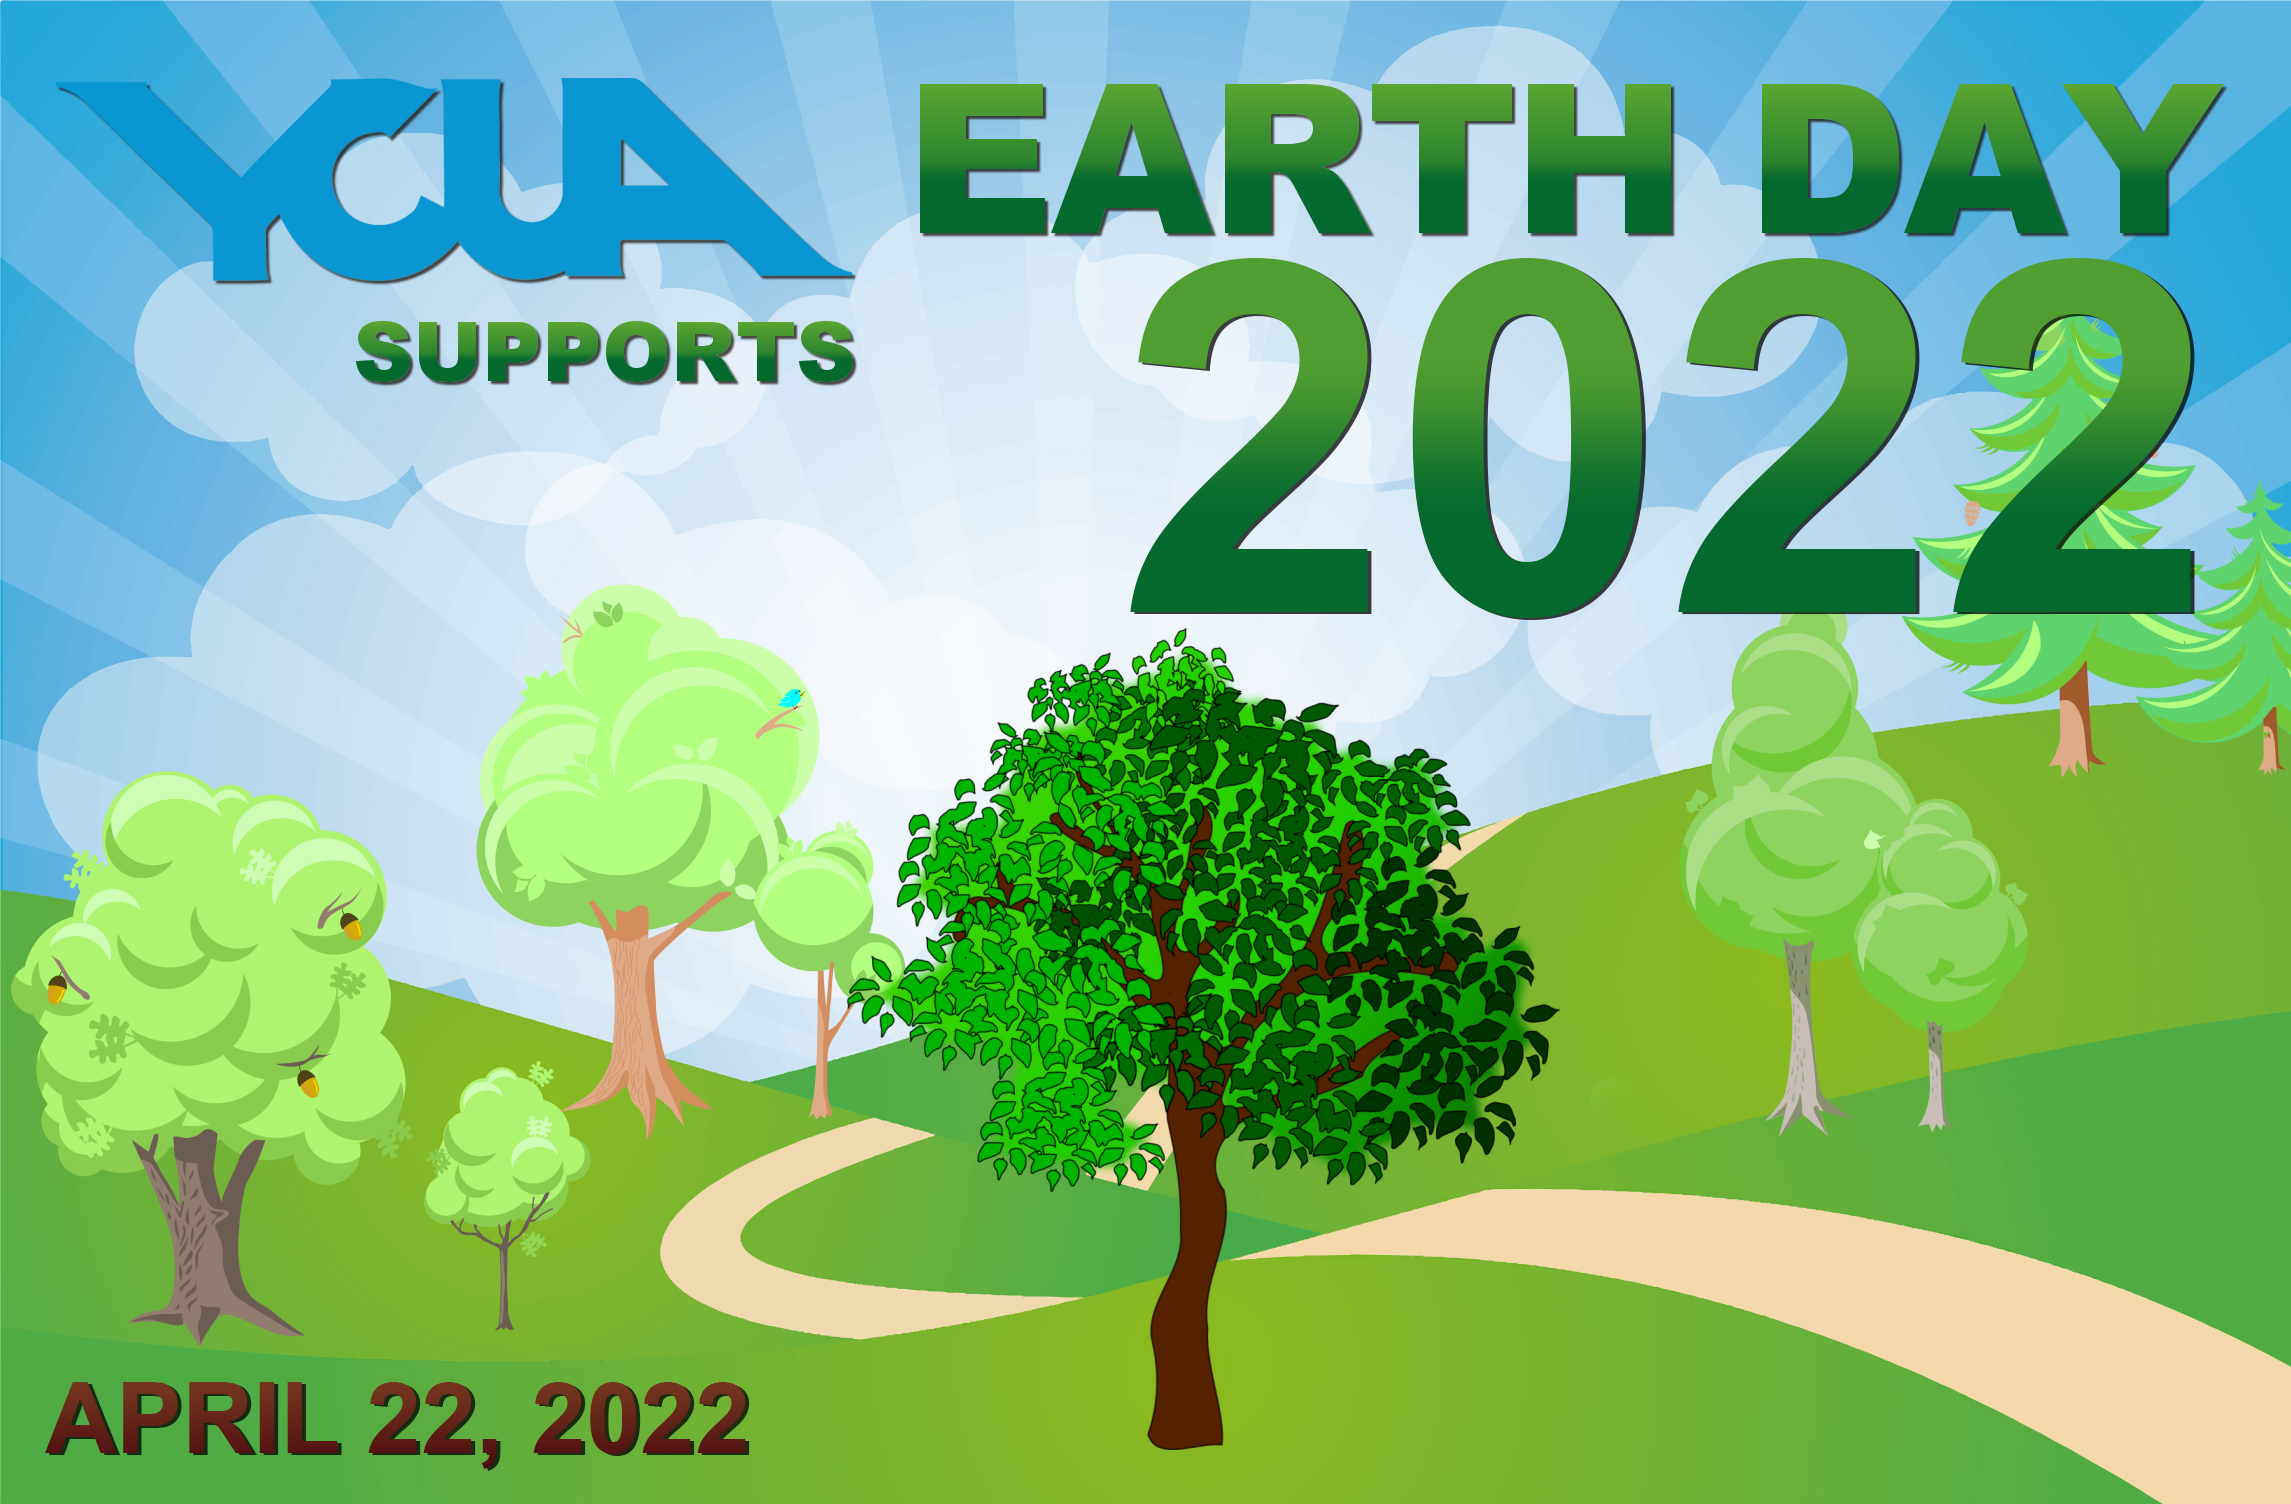 YCUA Invites You To Celebrate The 47th Annual Earth Day on April 22, 2017